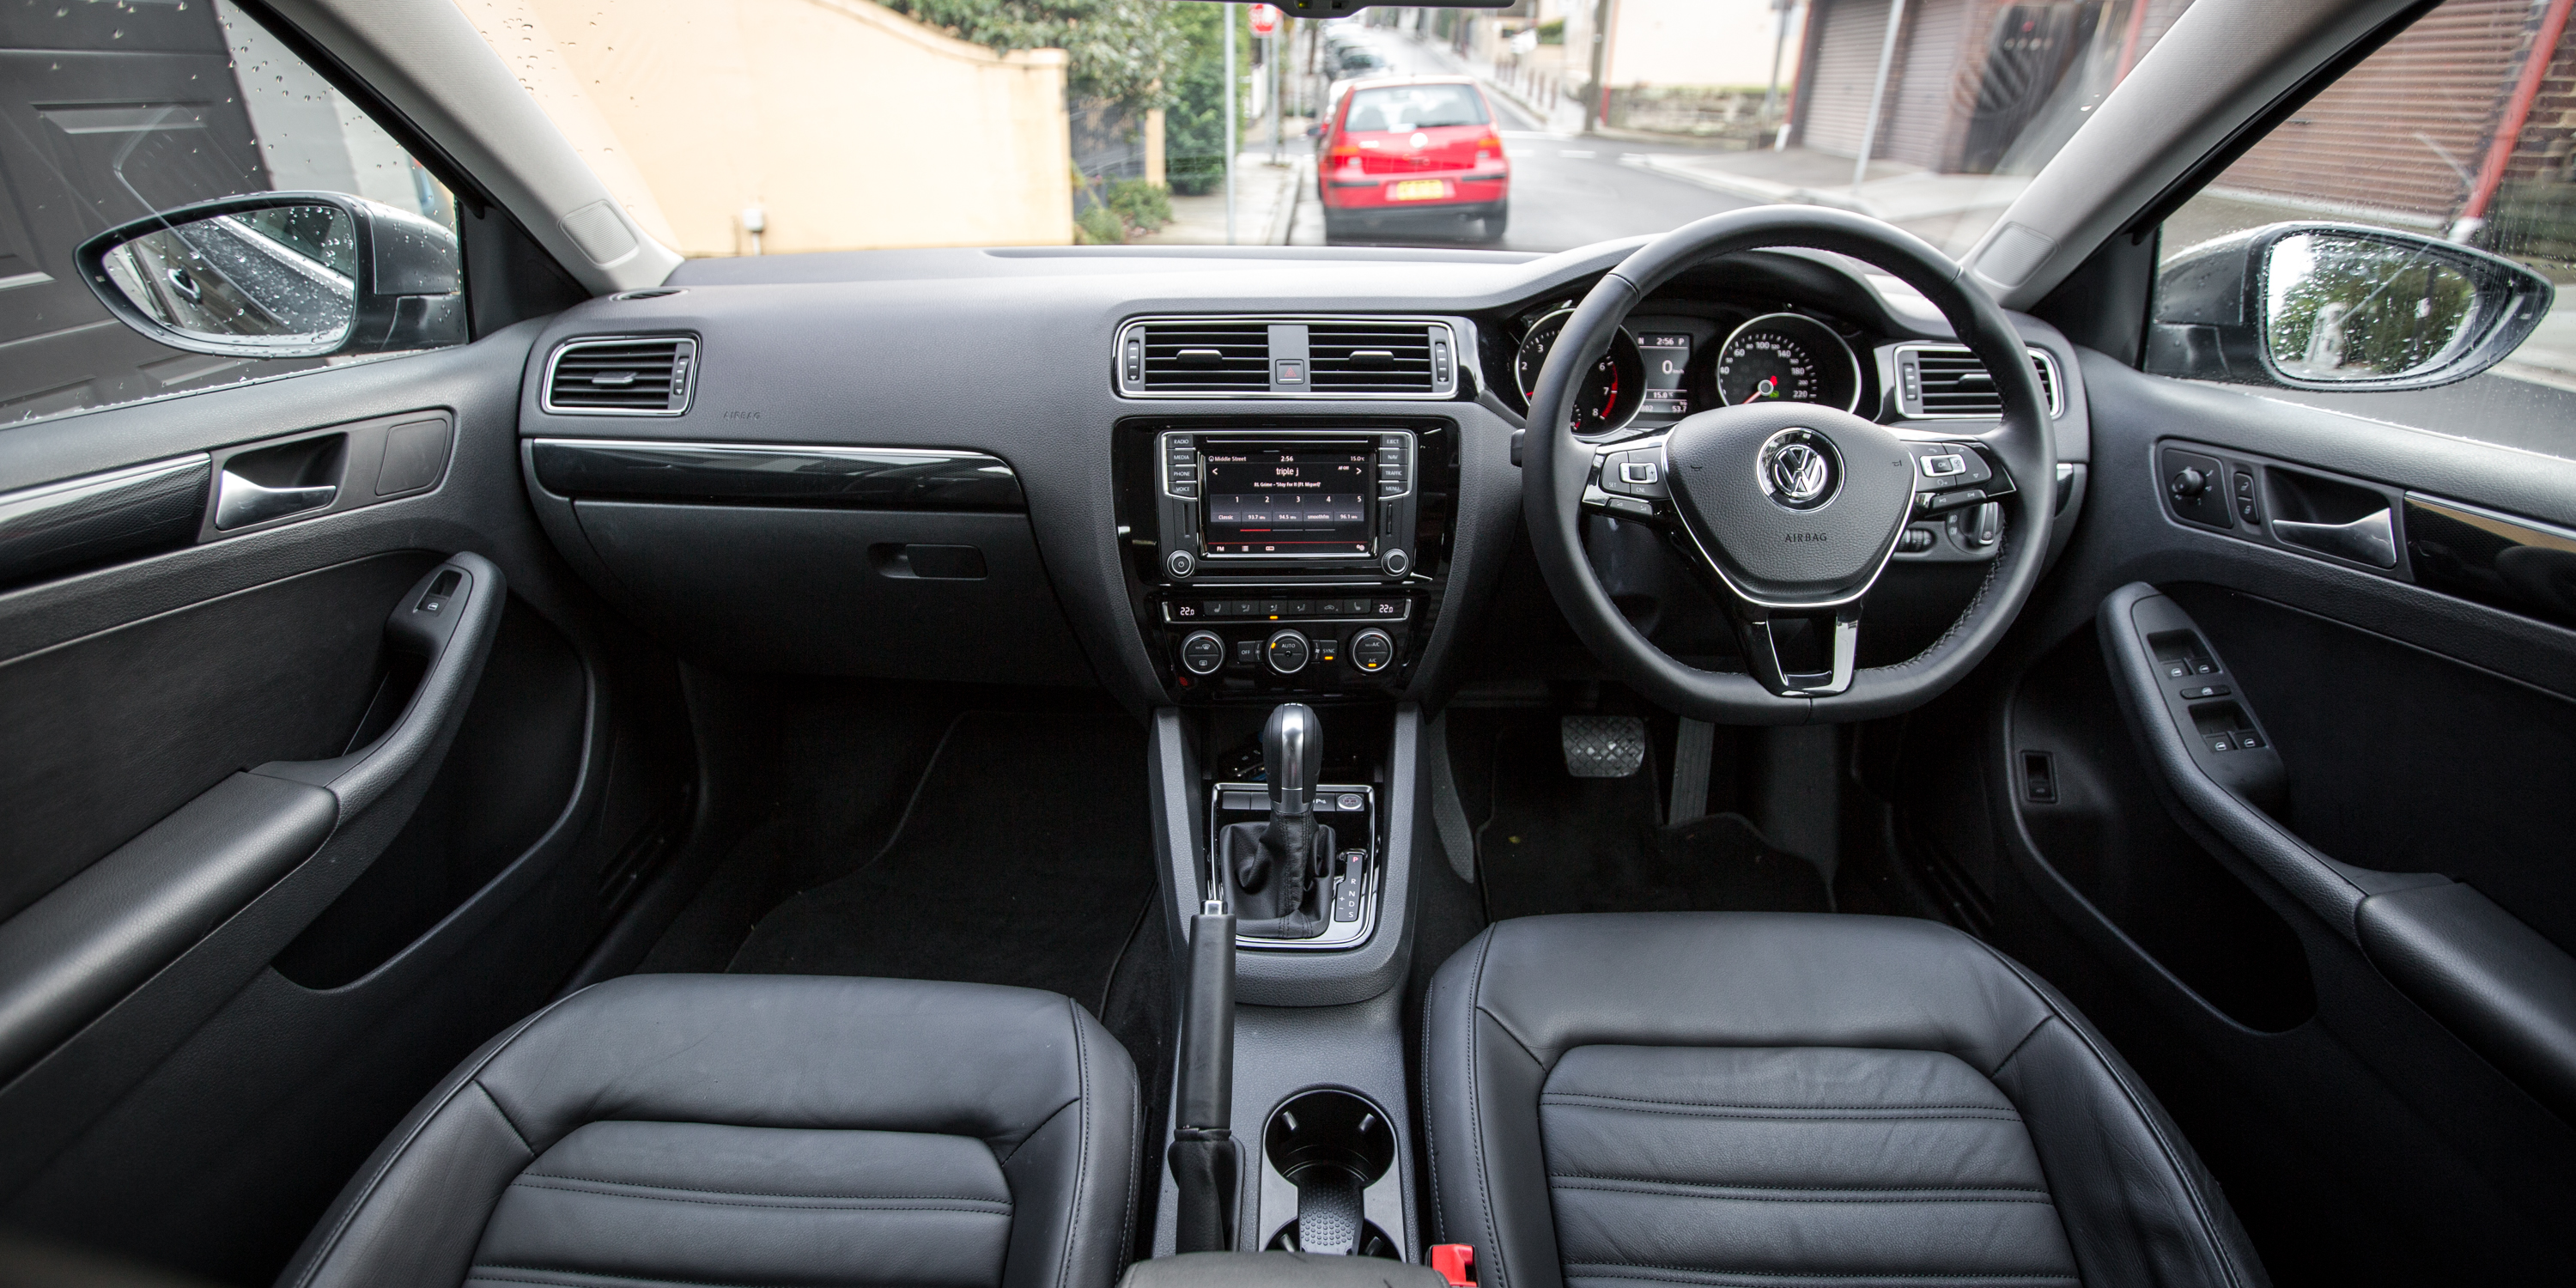 Volkswagen Jetta photo 180389